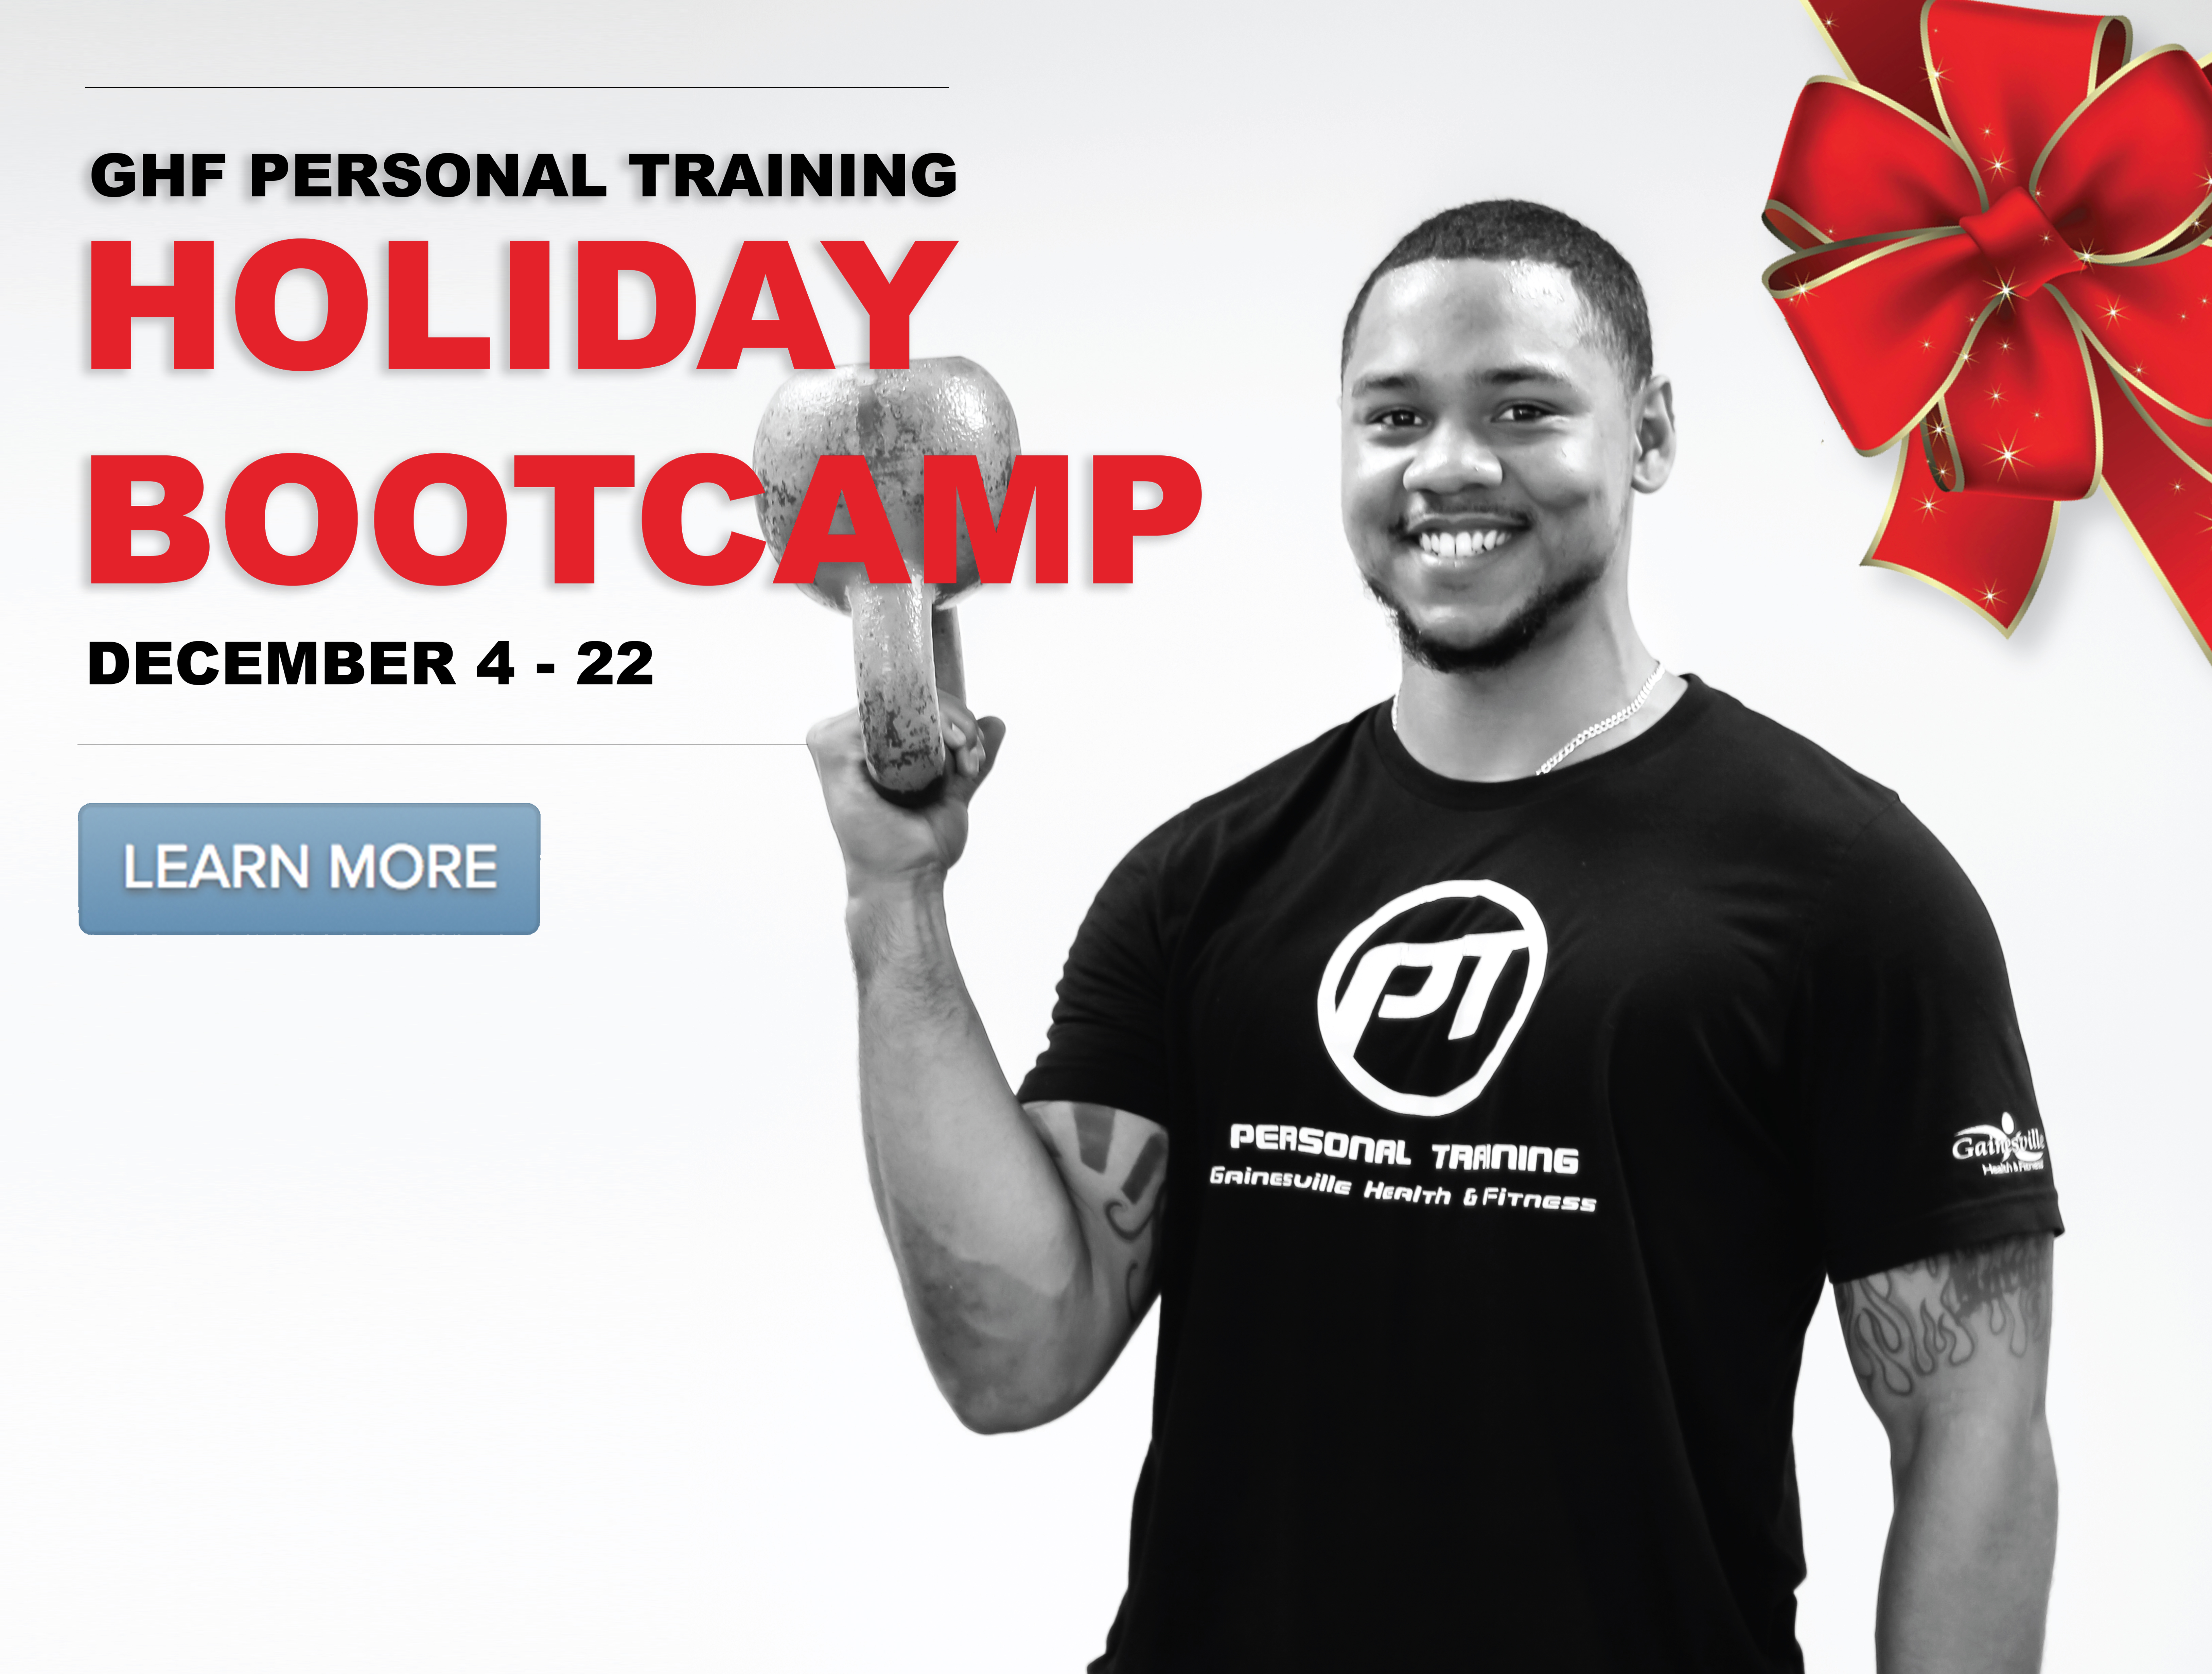 Holiday Boot Camp with GHF Personal Training at Gainesville Health